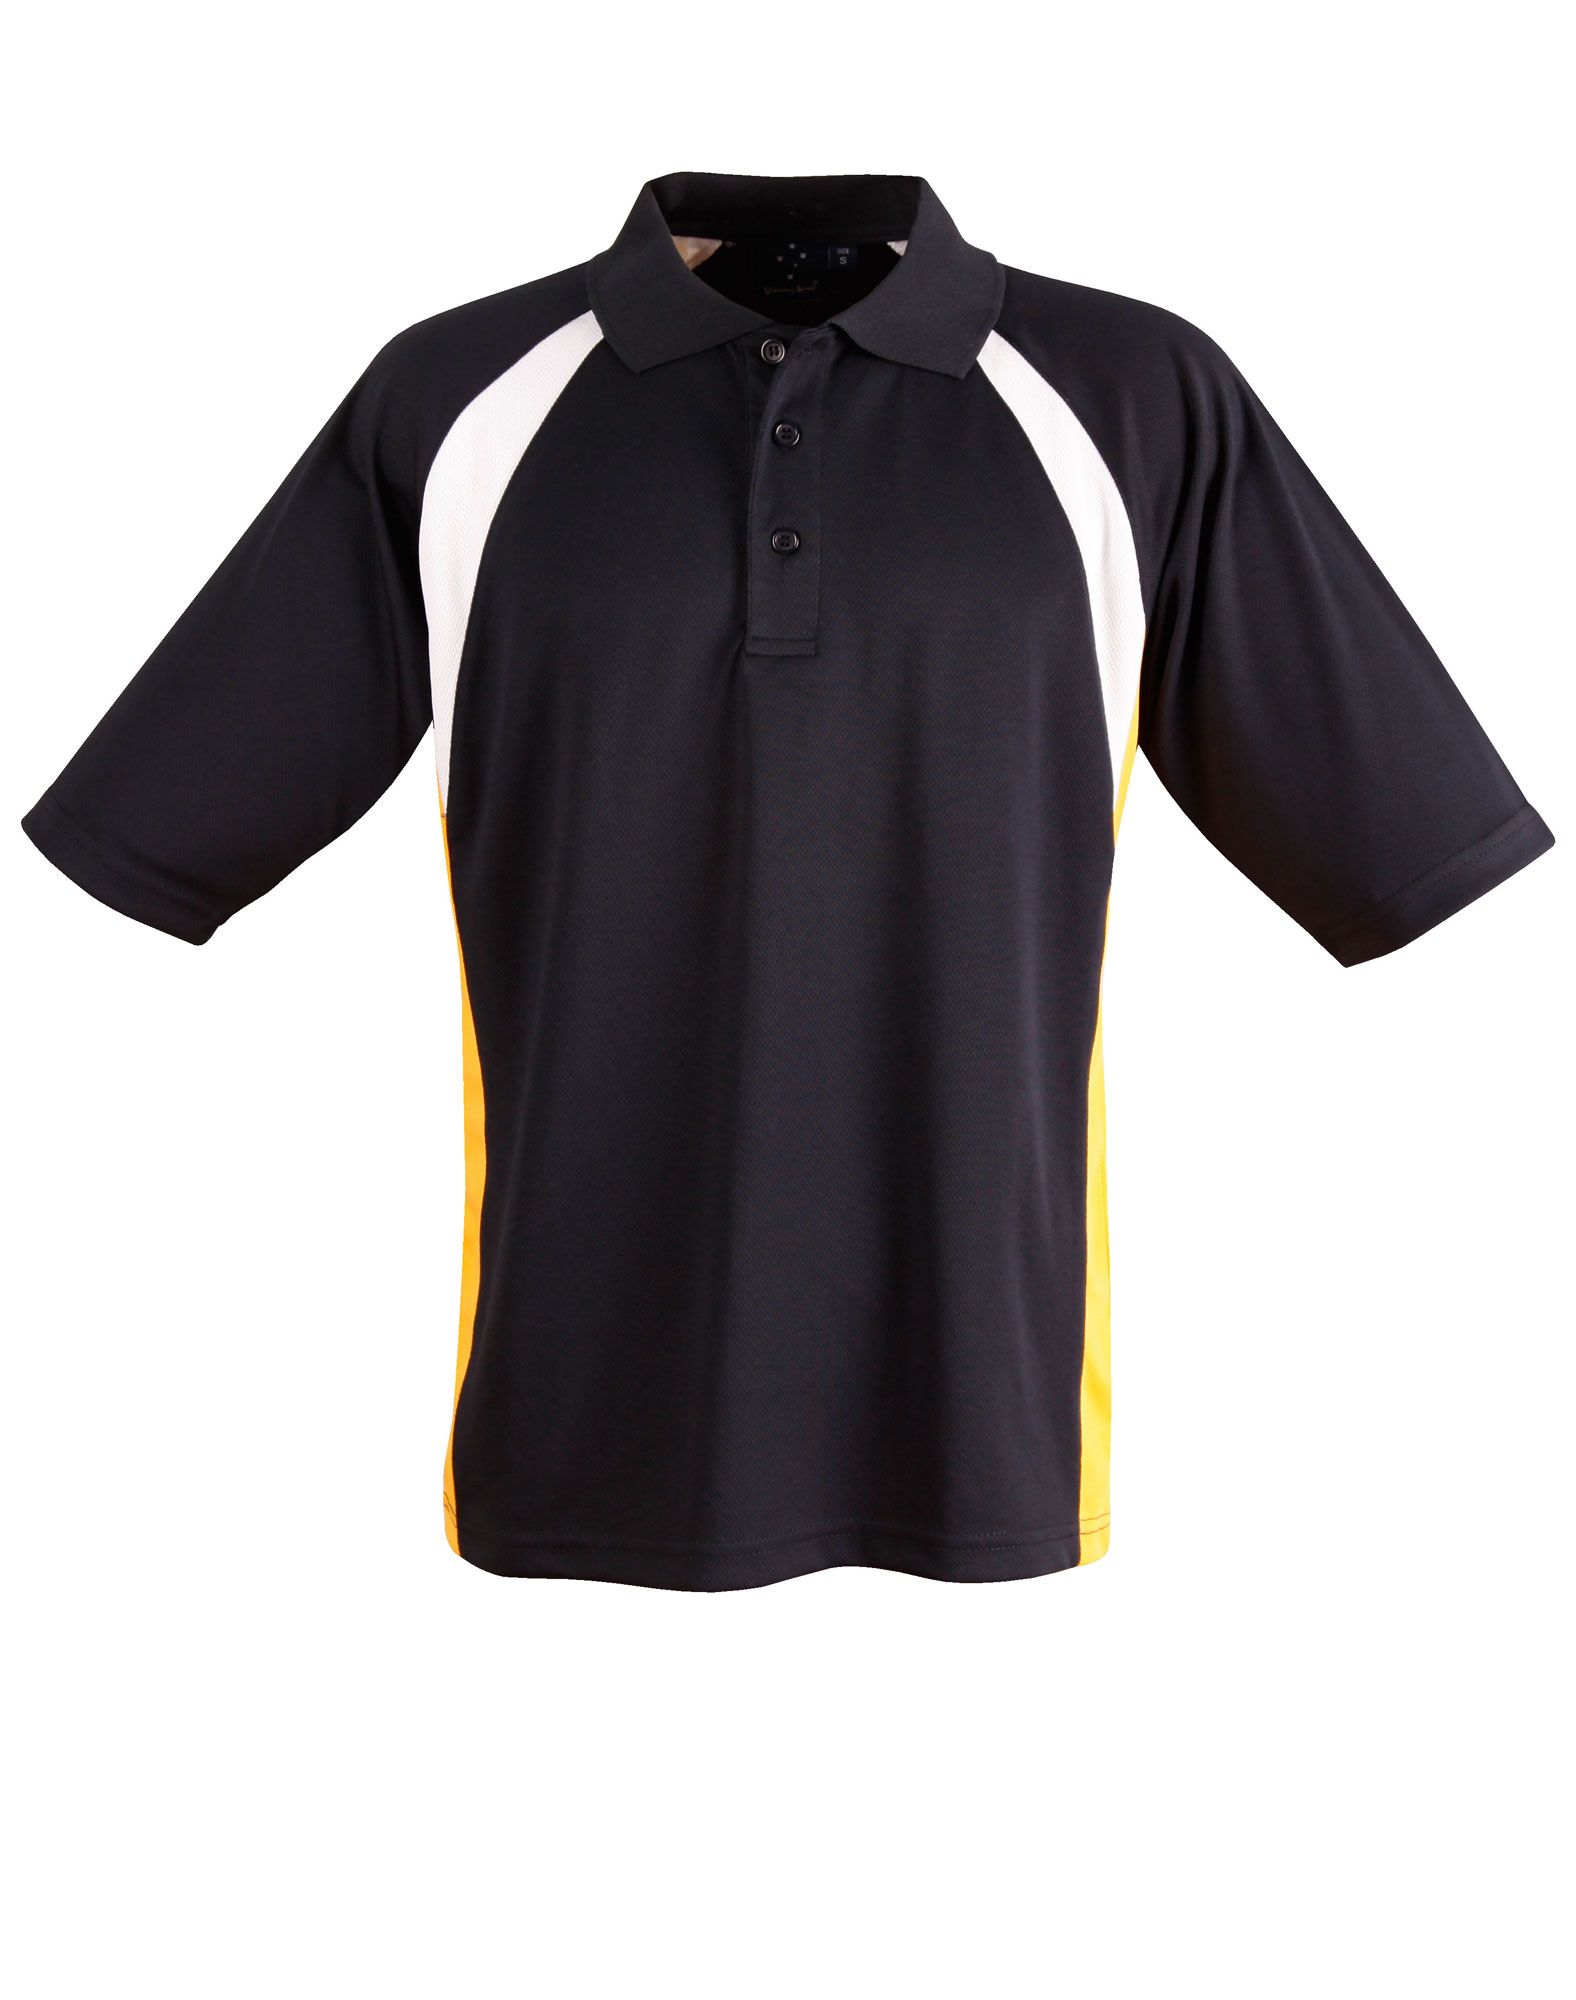 Ps28 Cooldry Tri Sport Mens Polo Shirt